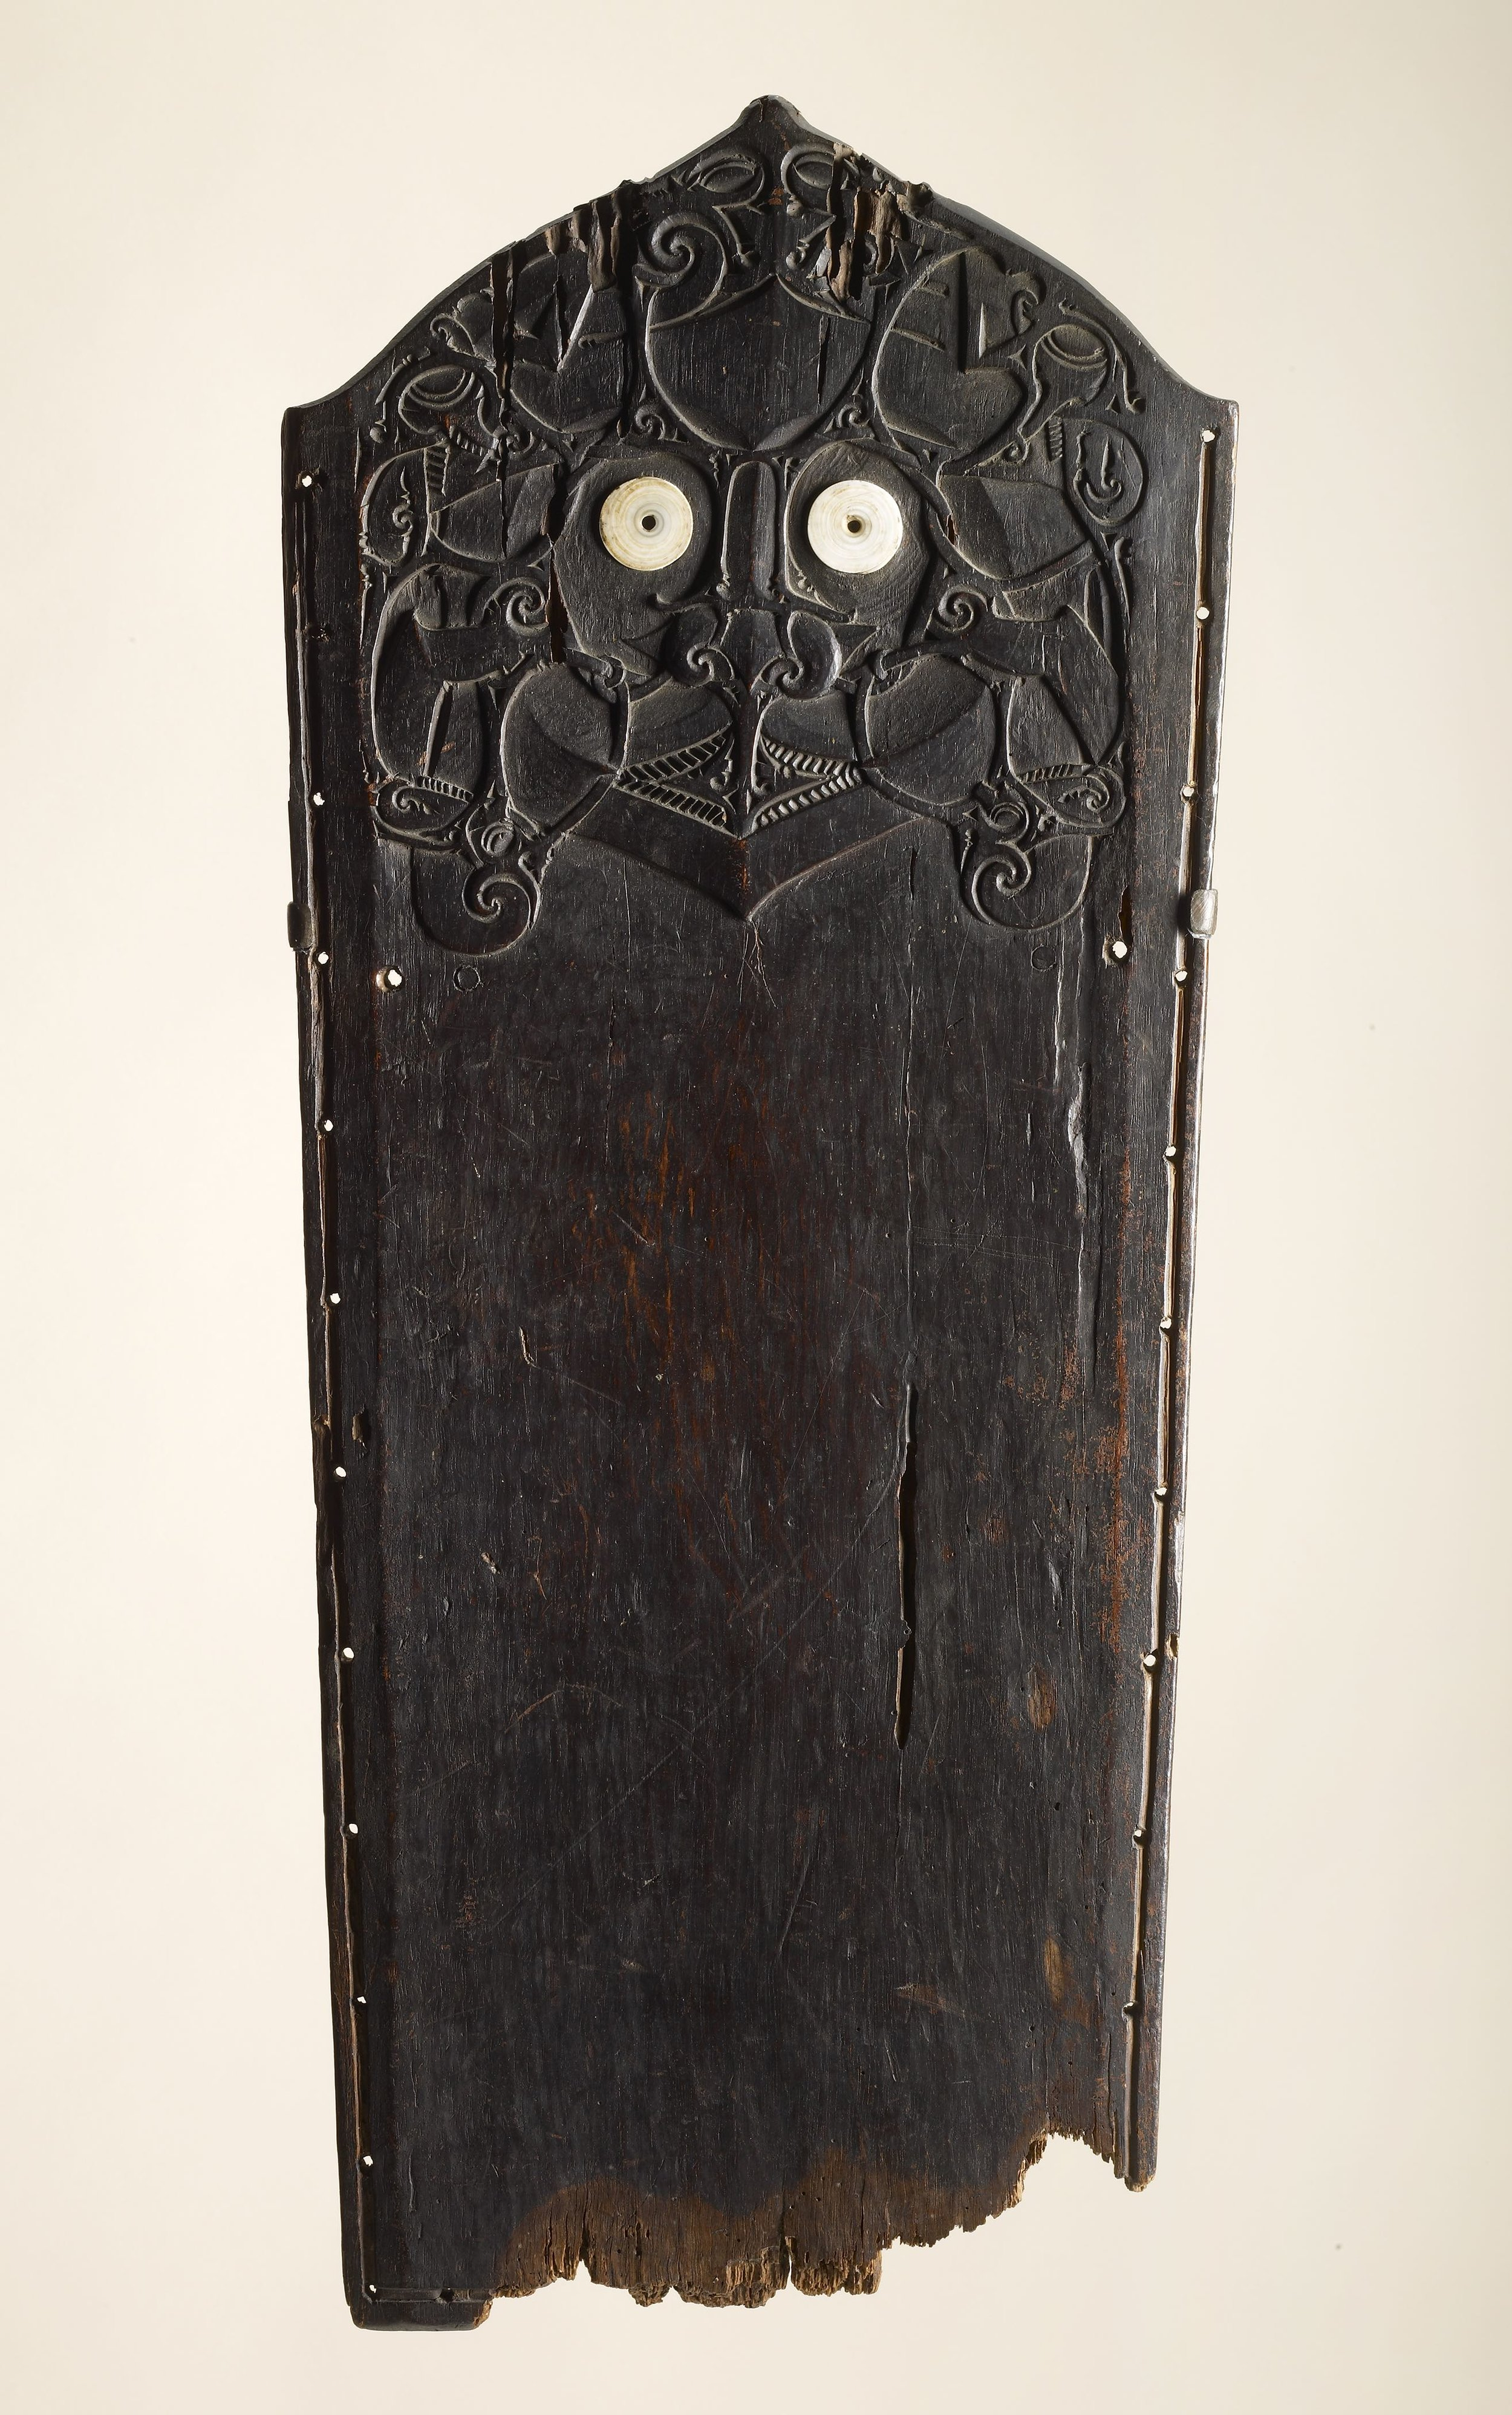 Dayak Woman's Work Board | Borneo © de Young | Fine Arts Museums of San Francisco